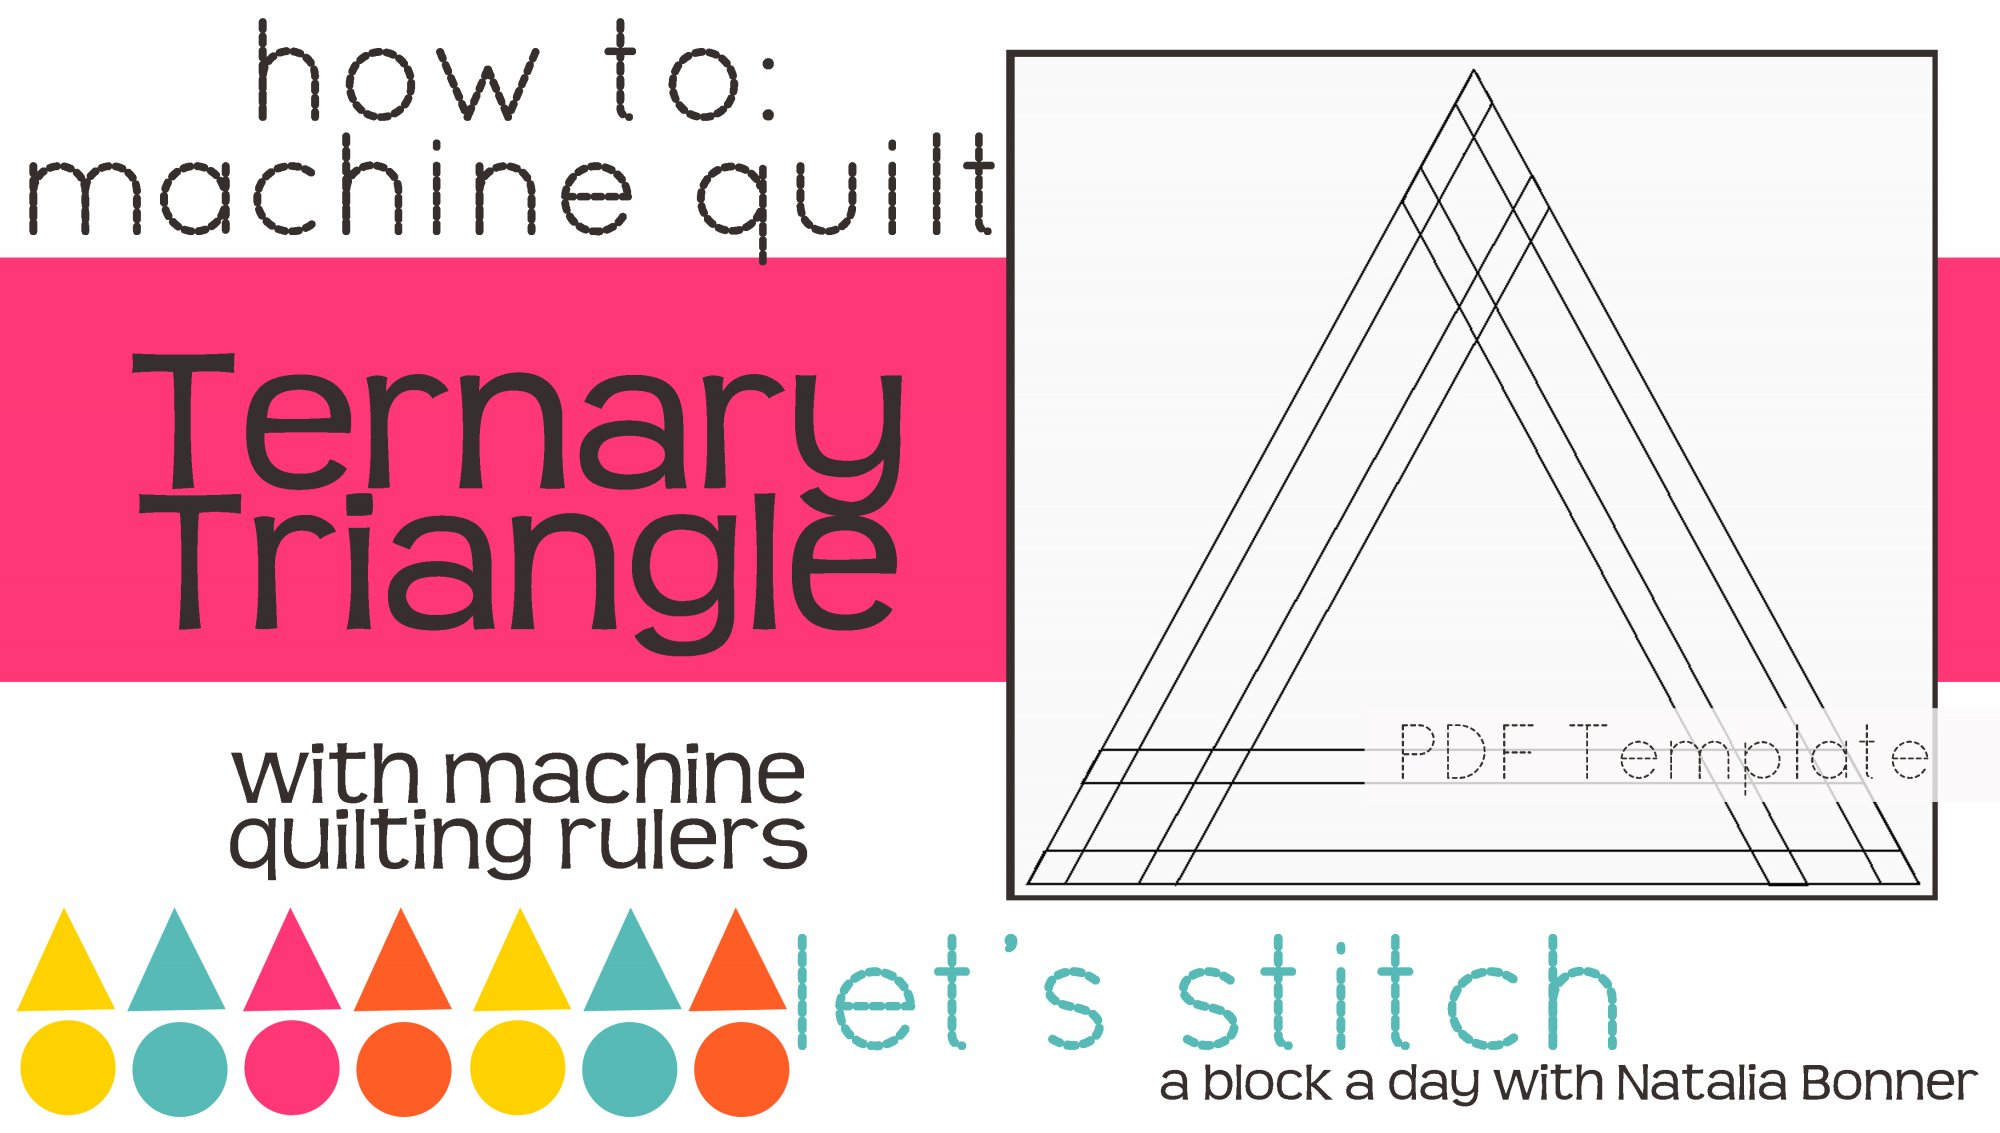 Let's Stitch - A Block a Day With Natalia Bonner - PDF - Ternary Triangle